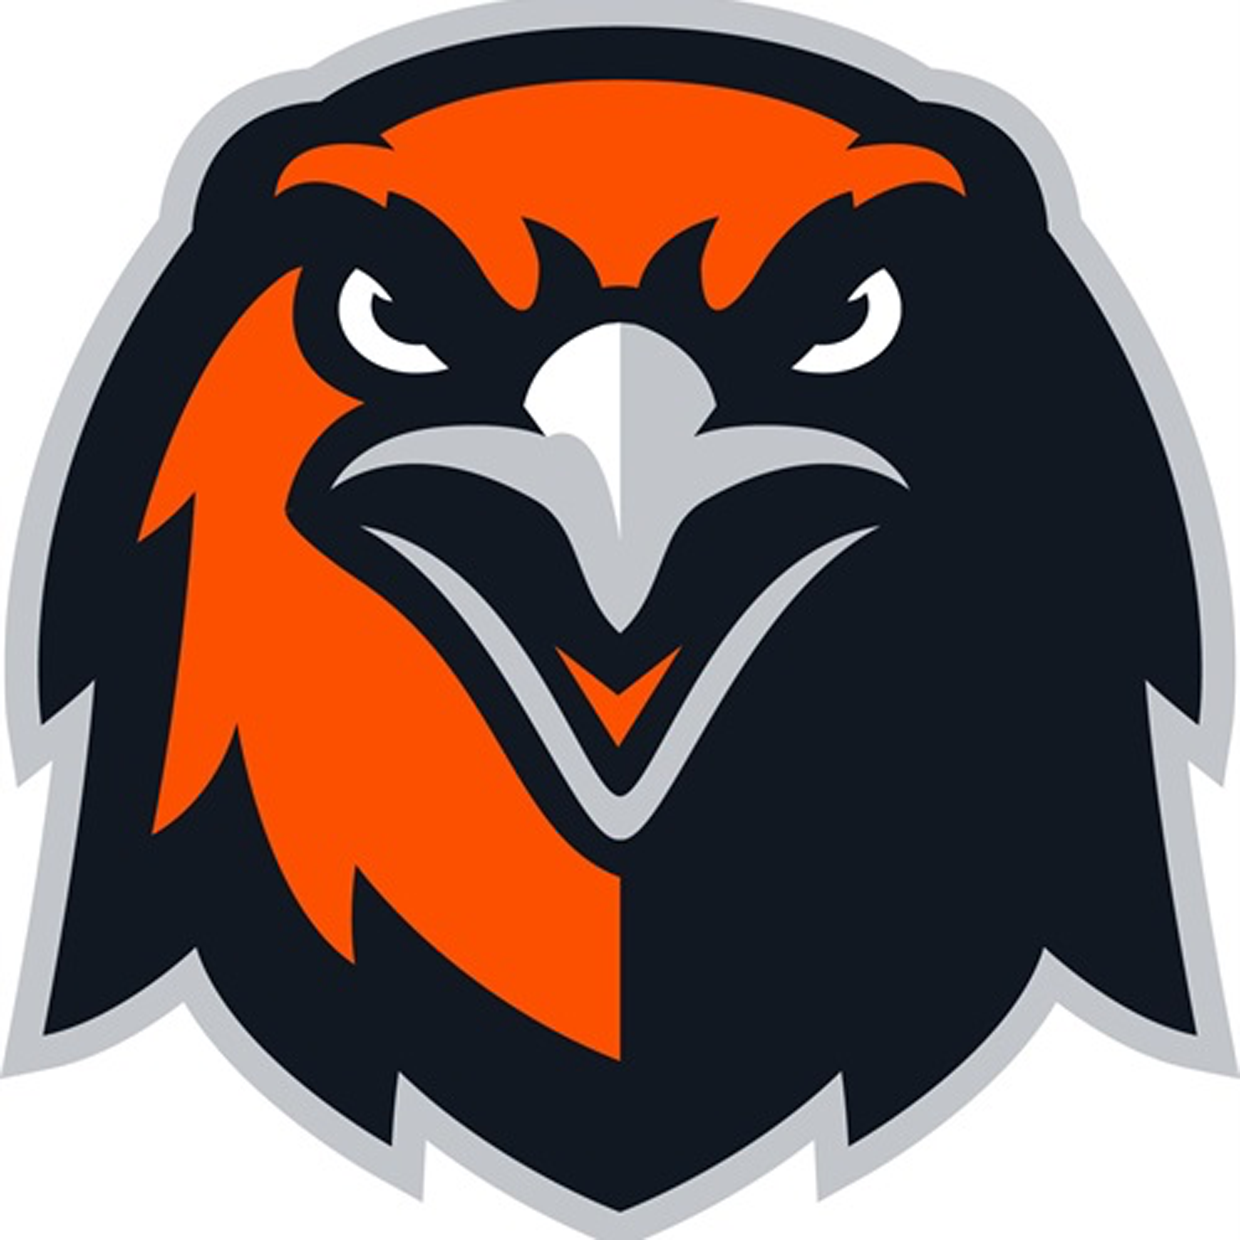 Grand rapids  mn  thunderhawks